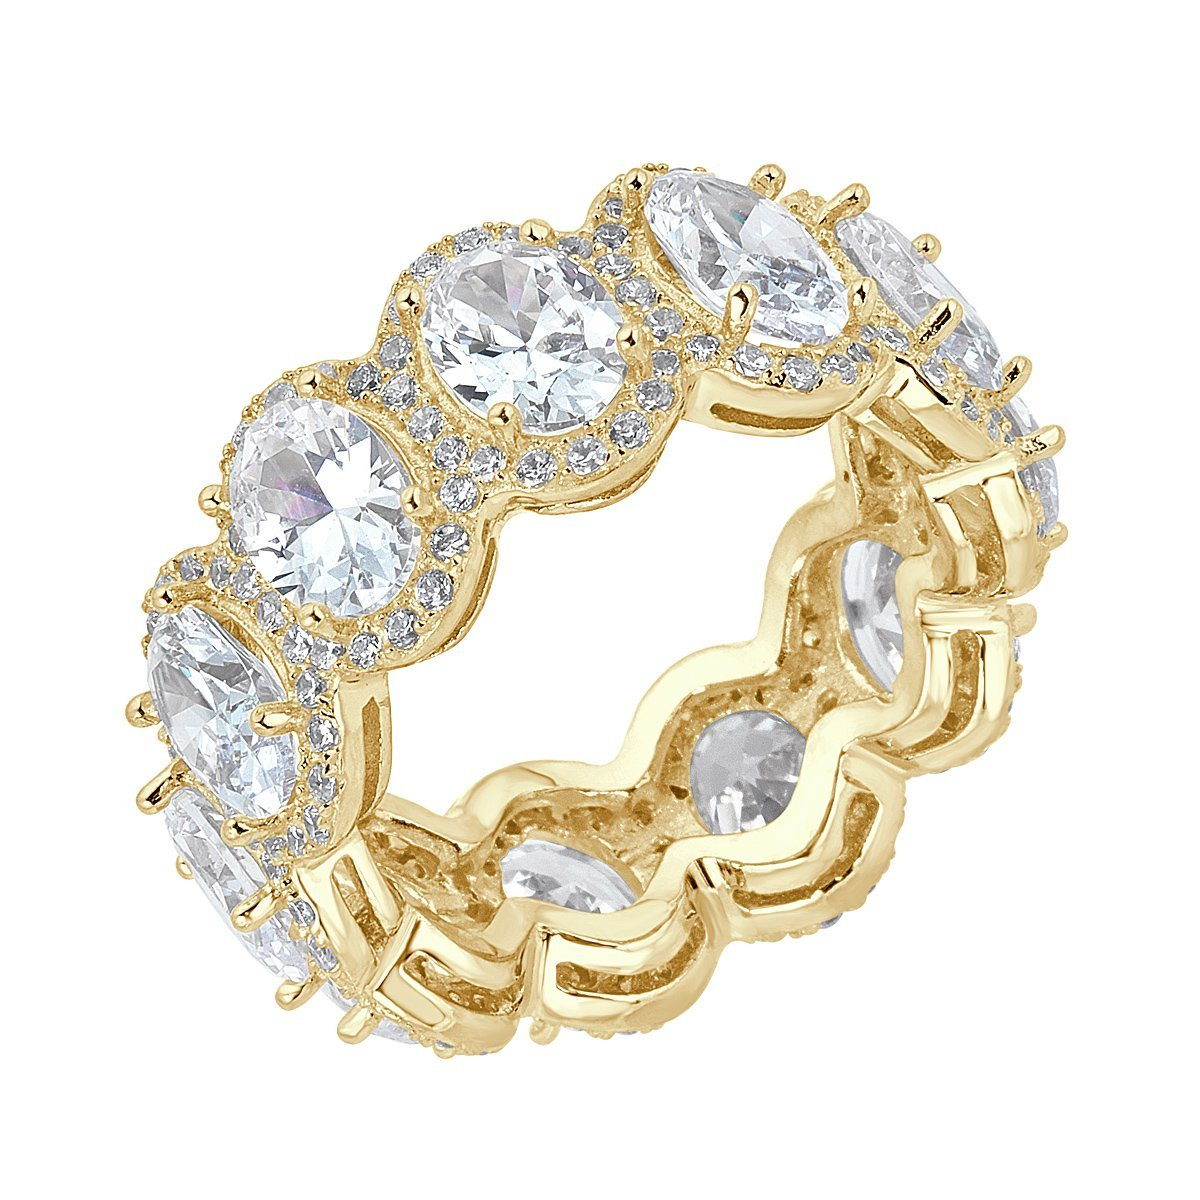 Gold Plated Sterling Silver Eternity Oval Cubic Zirconia Eternity Band Size 7 by Caratina